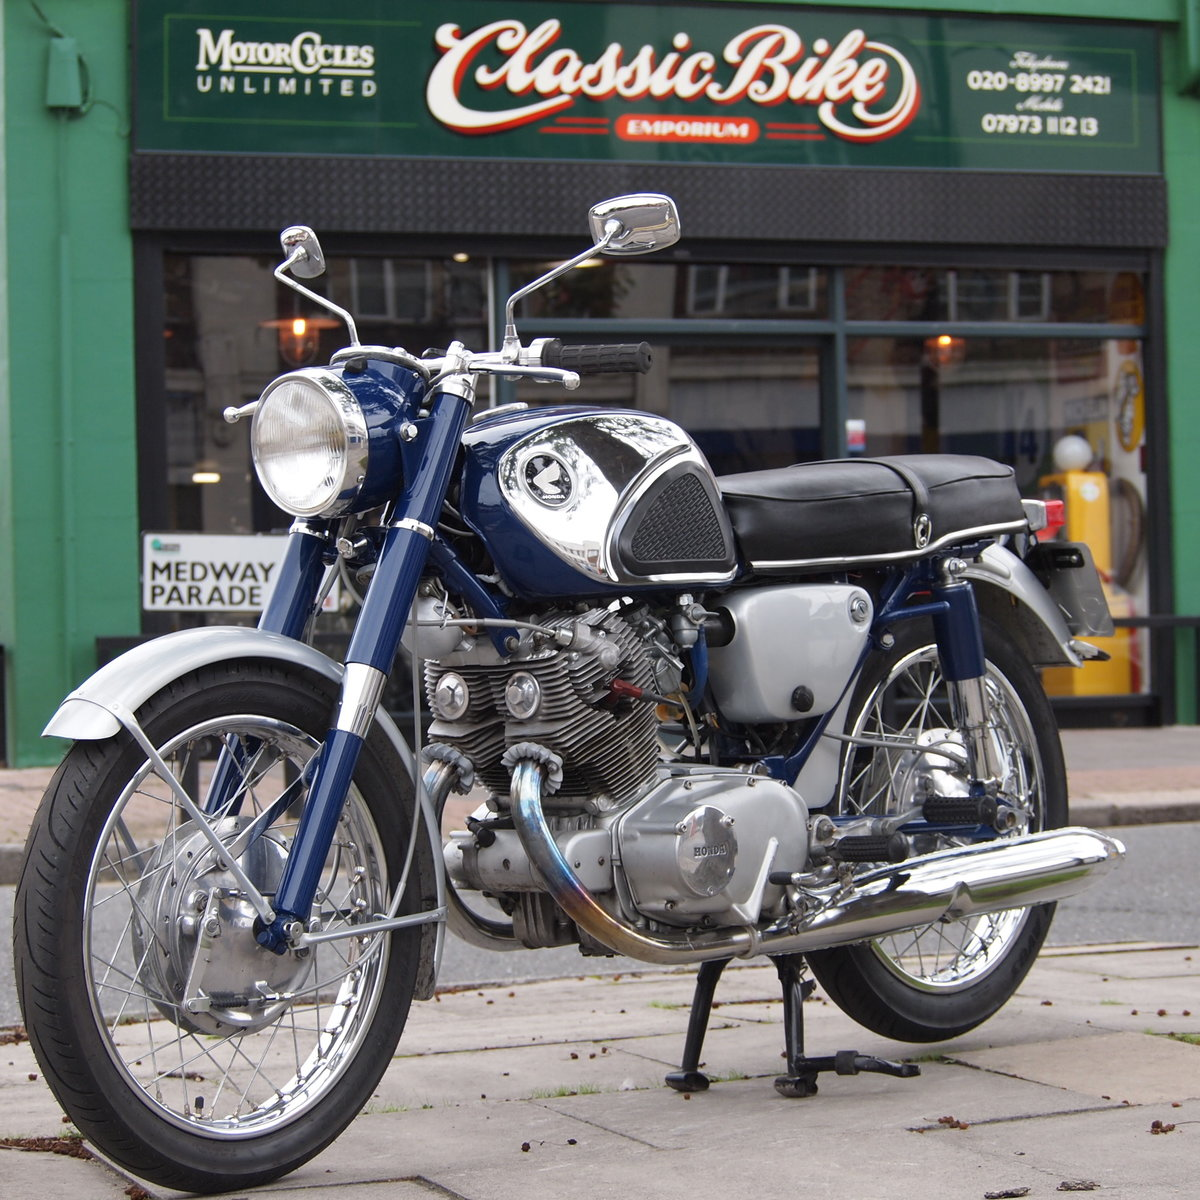 1965 Honda CB77 305cc Classic Twin, RESERVED FOR BILL. SOLD (picture 1 of 6)